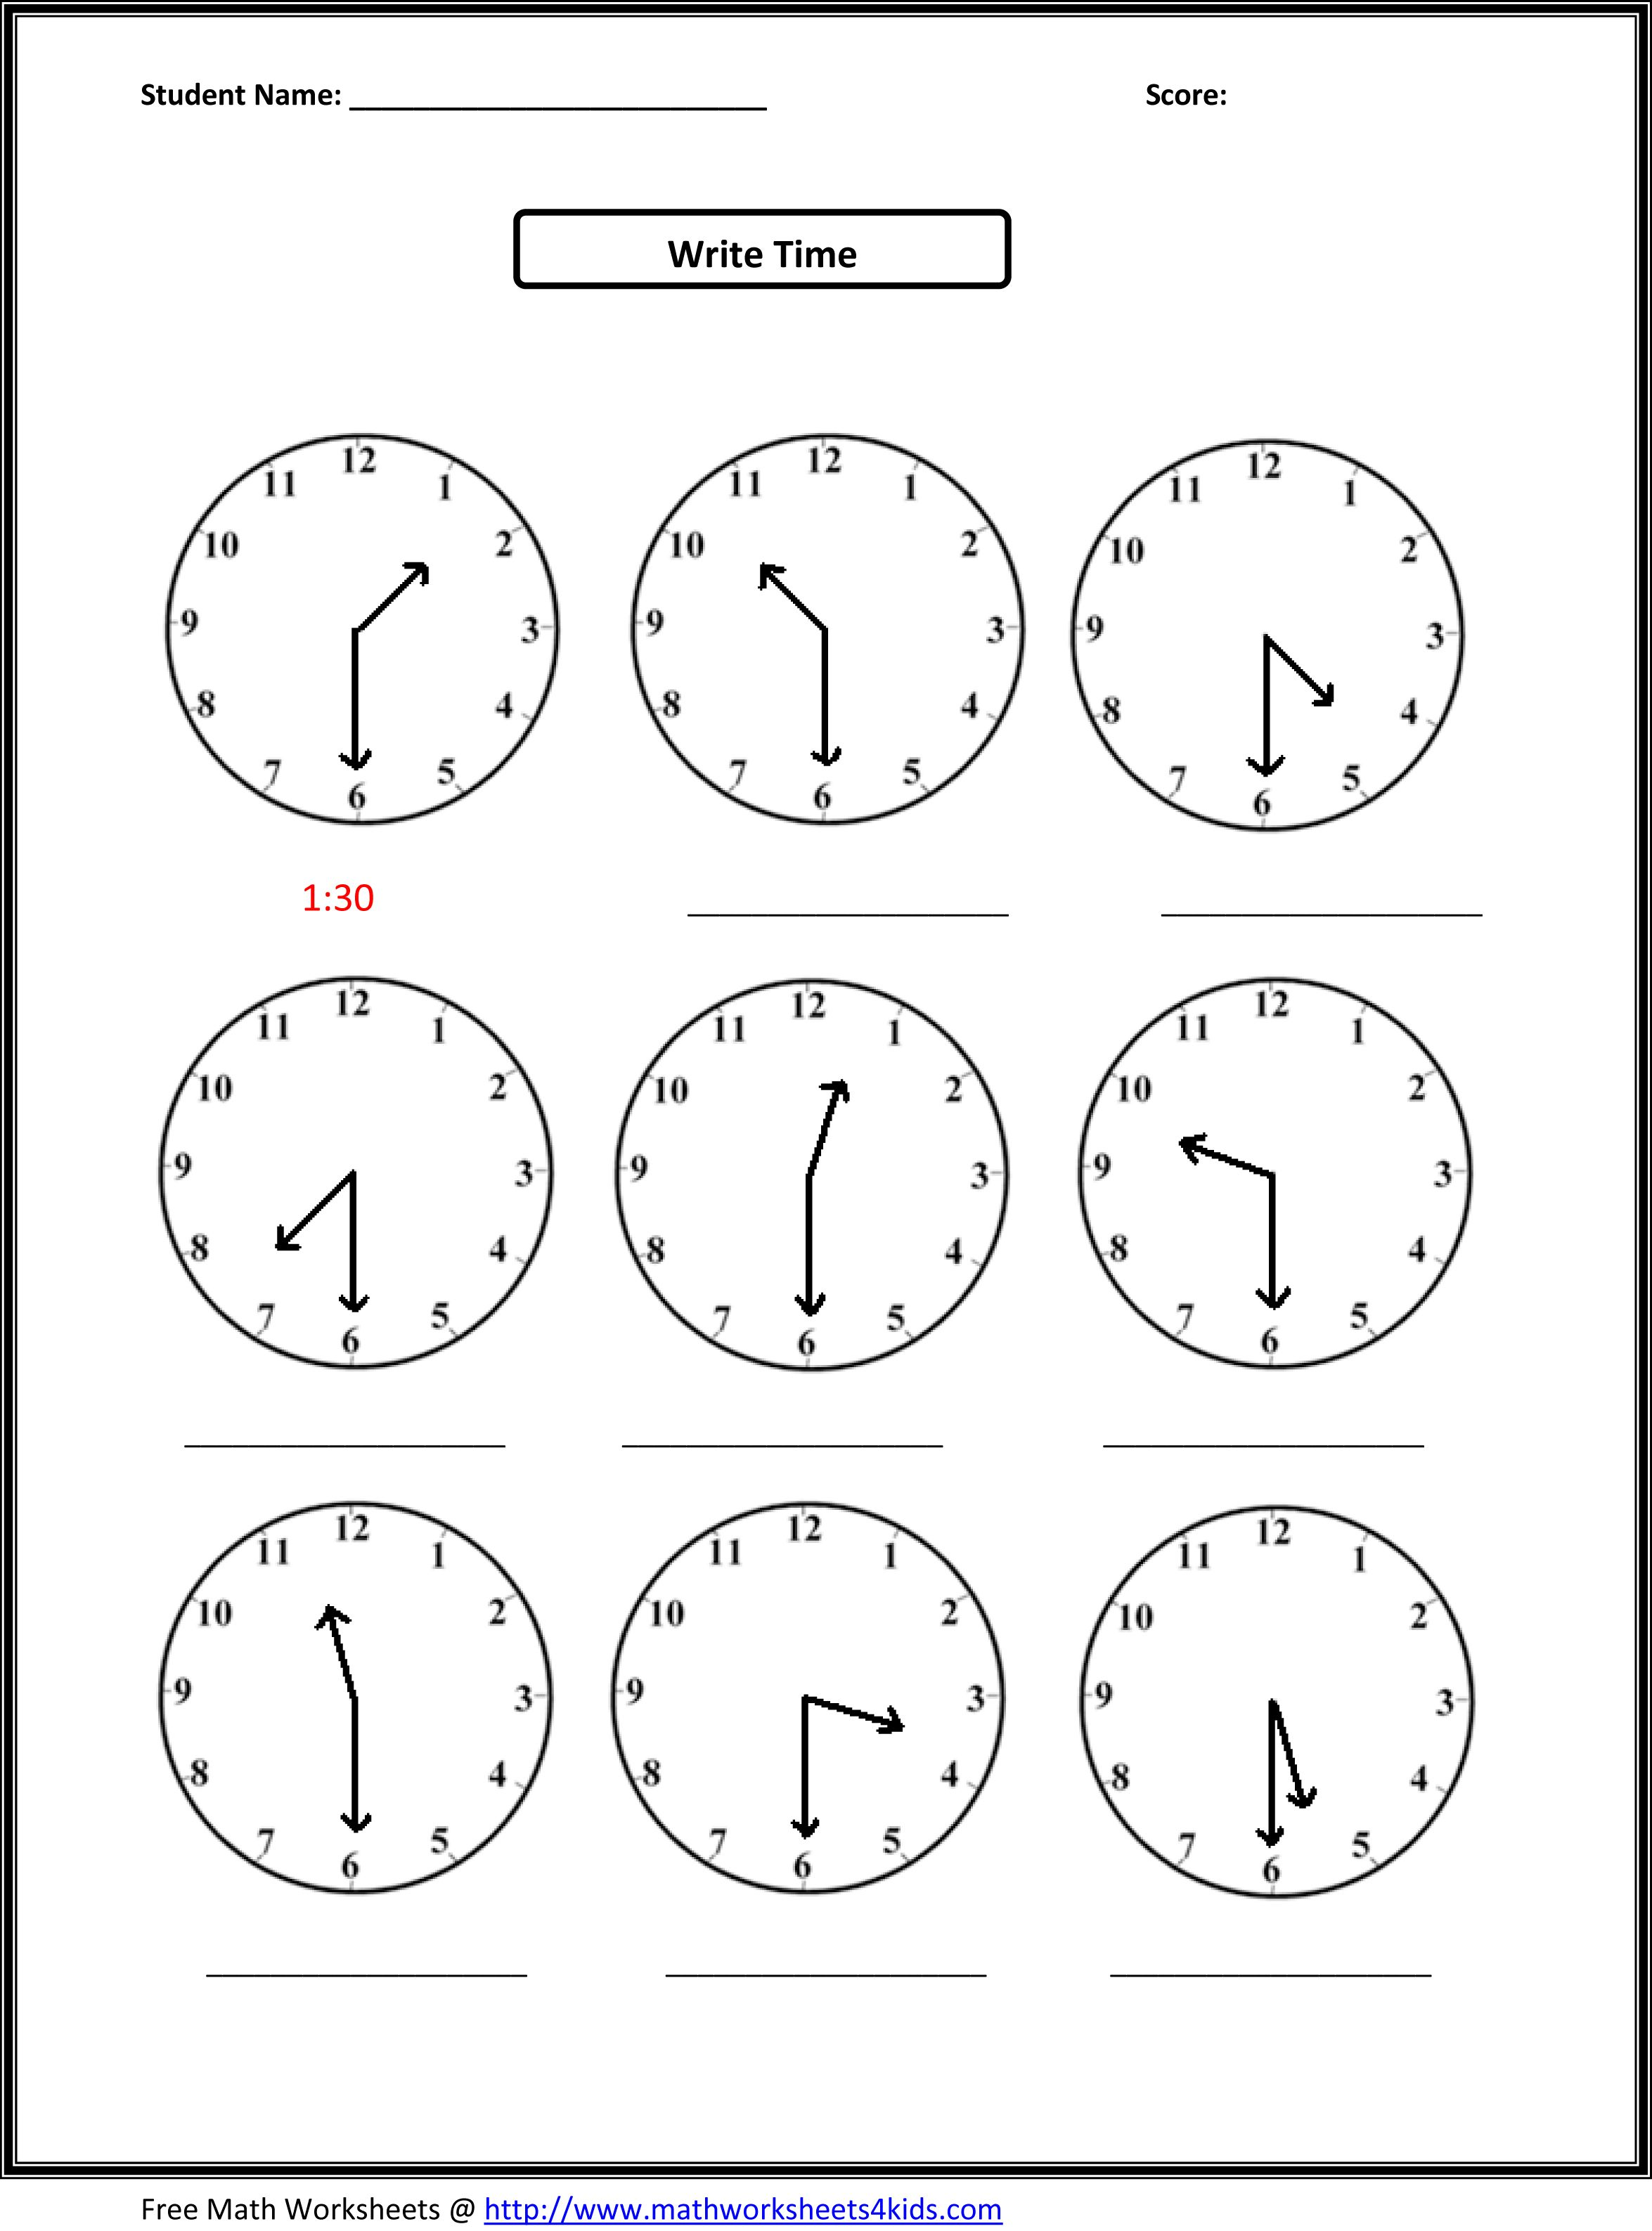 Proatmealus  Remarkable Worksheet On Time For Grade   Reocurent With Fair Free Printable Telling Time Worksheets Nd Grade  Reocurent With Divine Causes Of The Revolutionary War Worksheet Also Kinematics Practice Problems Worksheet In Addition Simple Present Past Future Tense Worksheets And Sentence Writing Worksheets Year  As Well As Science Worksheets For Rd Grade Free Additionally Simultaneous Equations  Unknowns Worksheet From Reocurentcom With Proatmealus  Fair Worksheet On Time For Grade   Reocurent With Divine Free Printable Telling Time Worksheets Nd Grade  Reocurent And Remarkable Causes Of The Revolutionary War Worksheet Also Kinematics Practice Problems Worksheet In Addition Simple Present Past Future Tense Worksheets From Reocurentcom